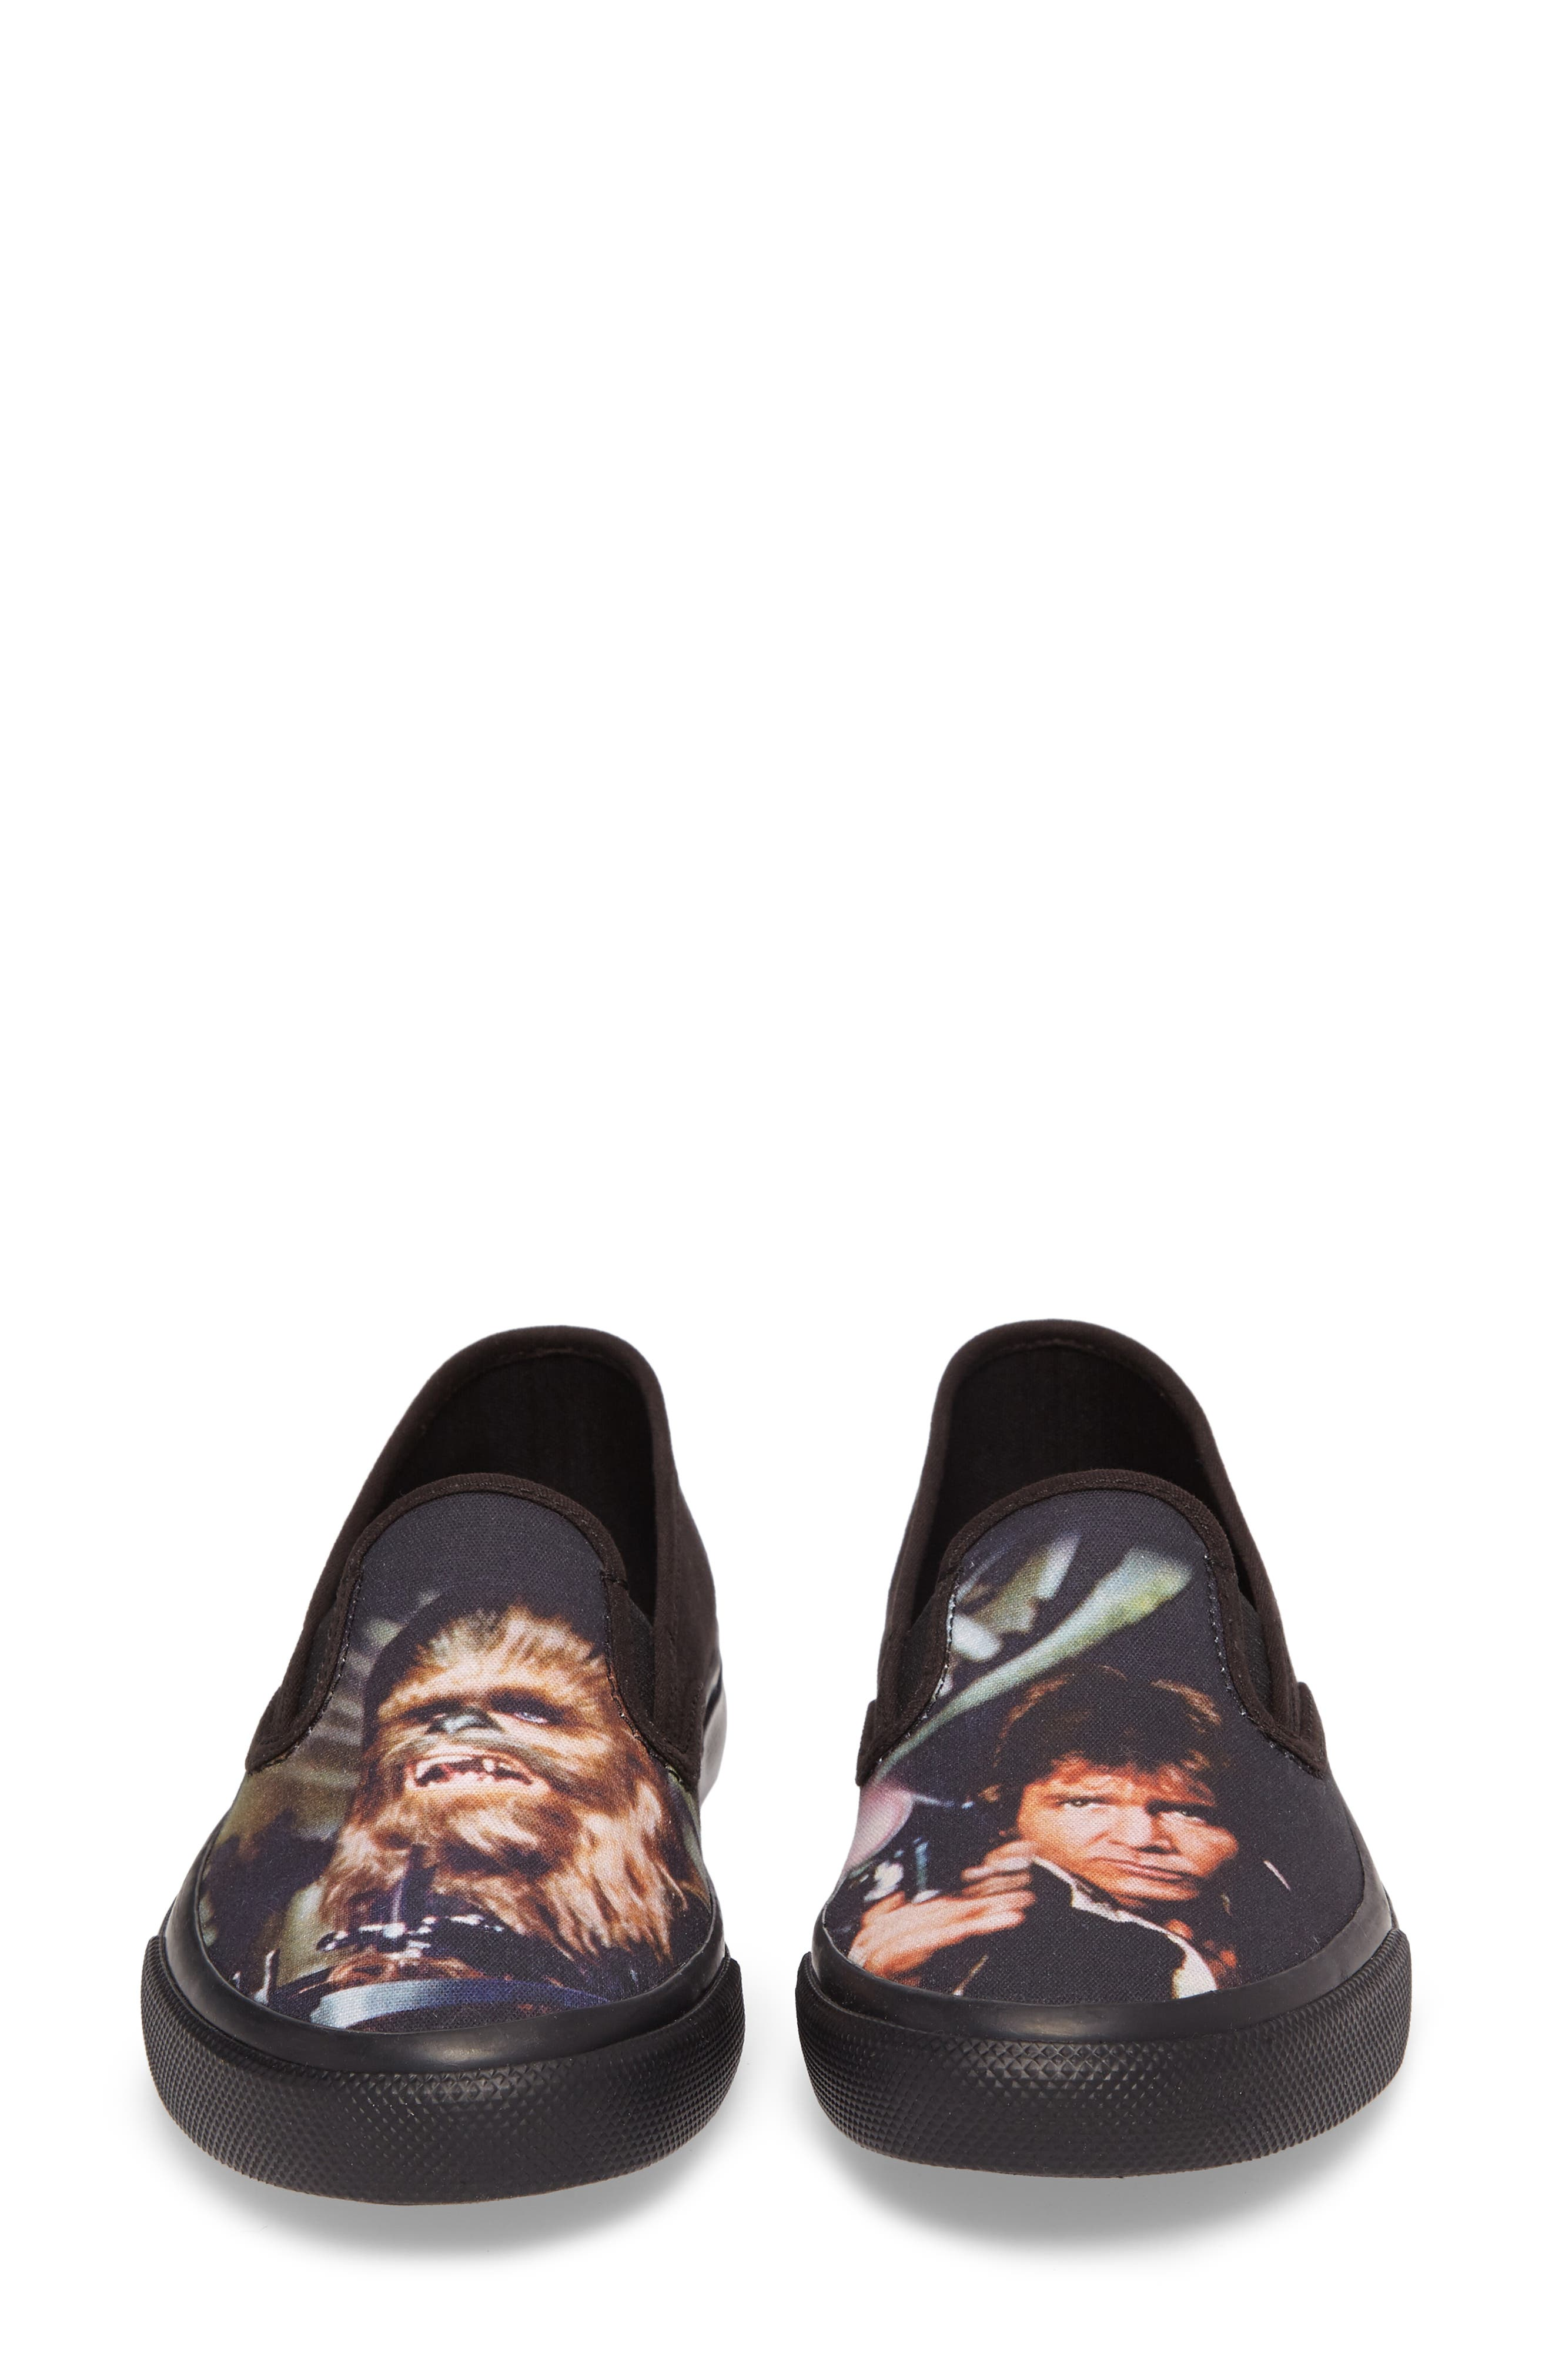 Star Wars - Chewie & Han Slip-On,                             Alternate thumbnail 4, color,                             001